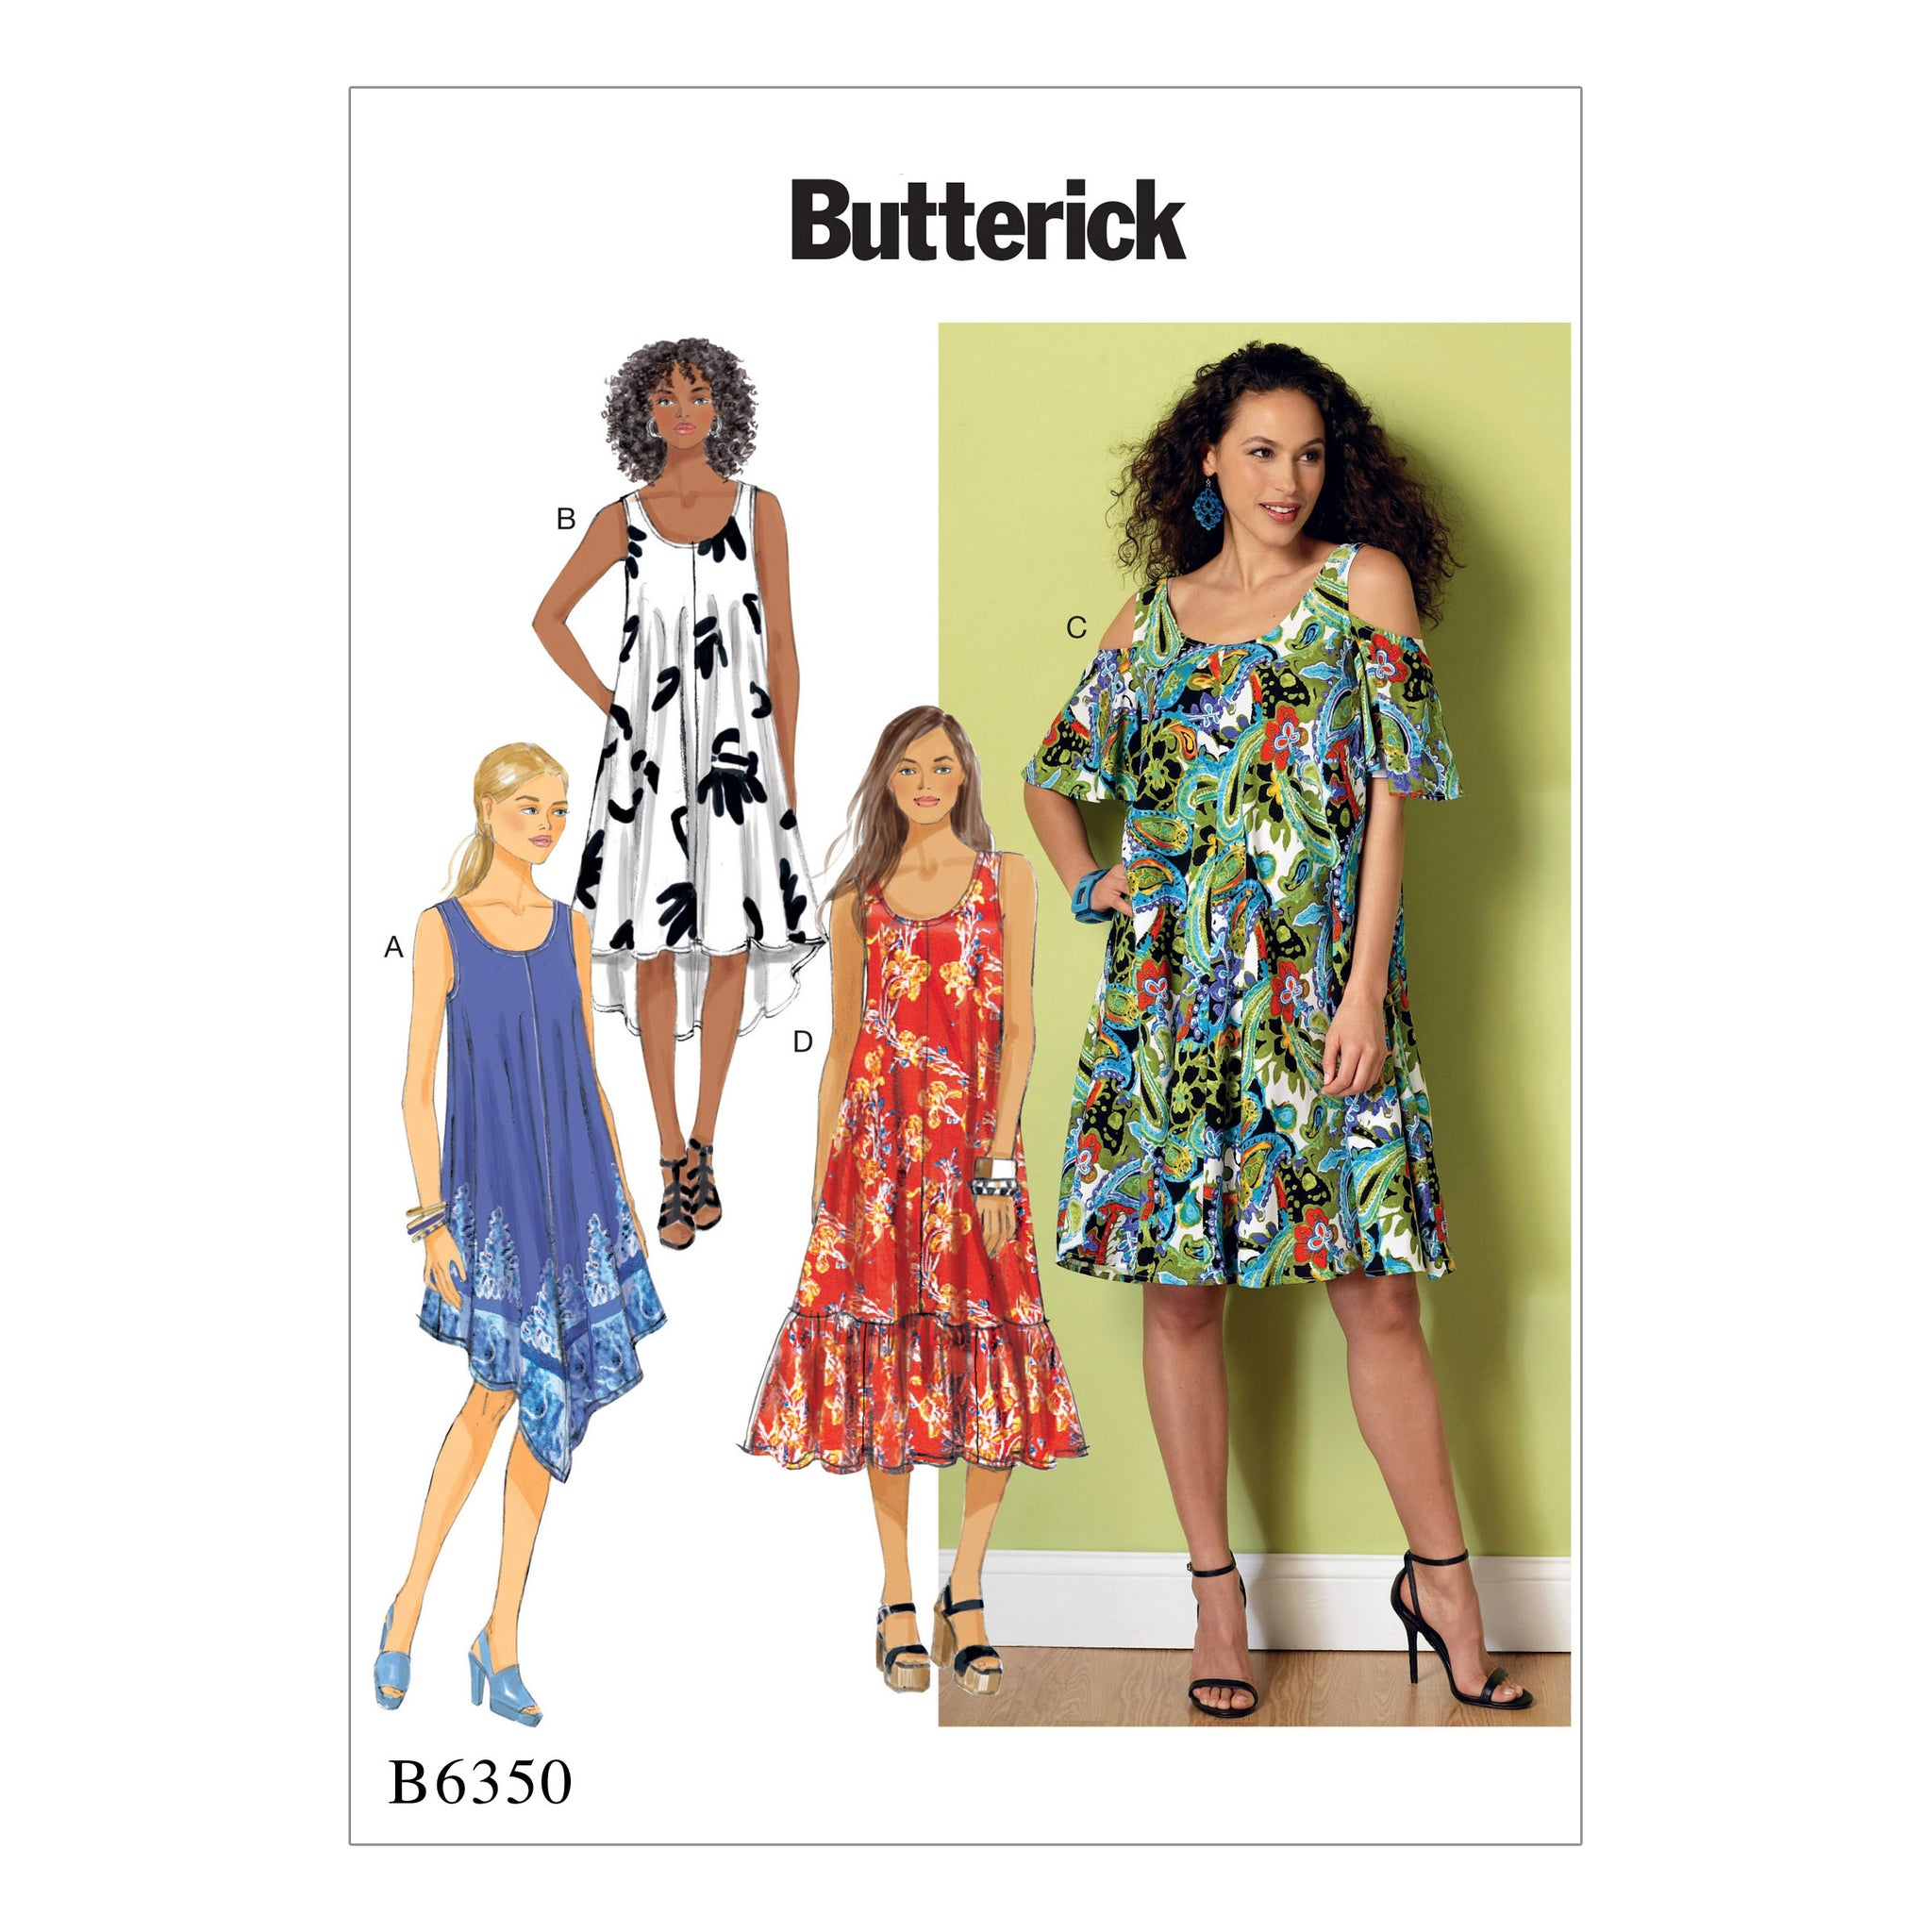 Butterick B6350ZZ0 Misses' Sleeveless and Cold Shoulder Dresses 16-18-20-22-24-26